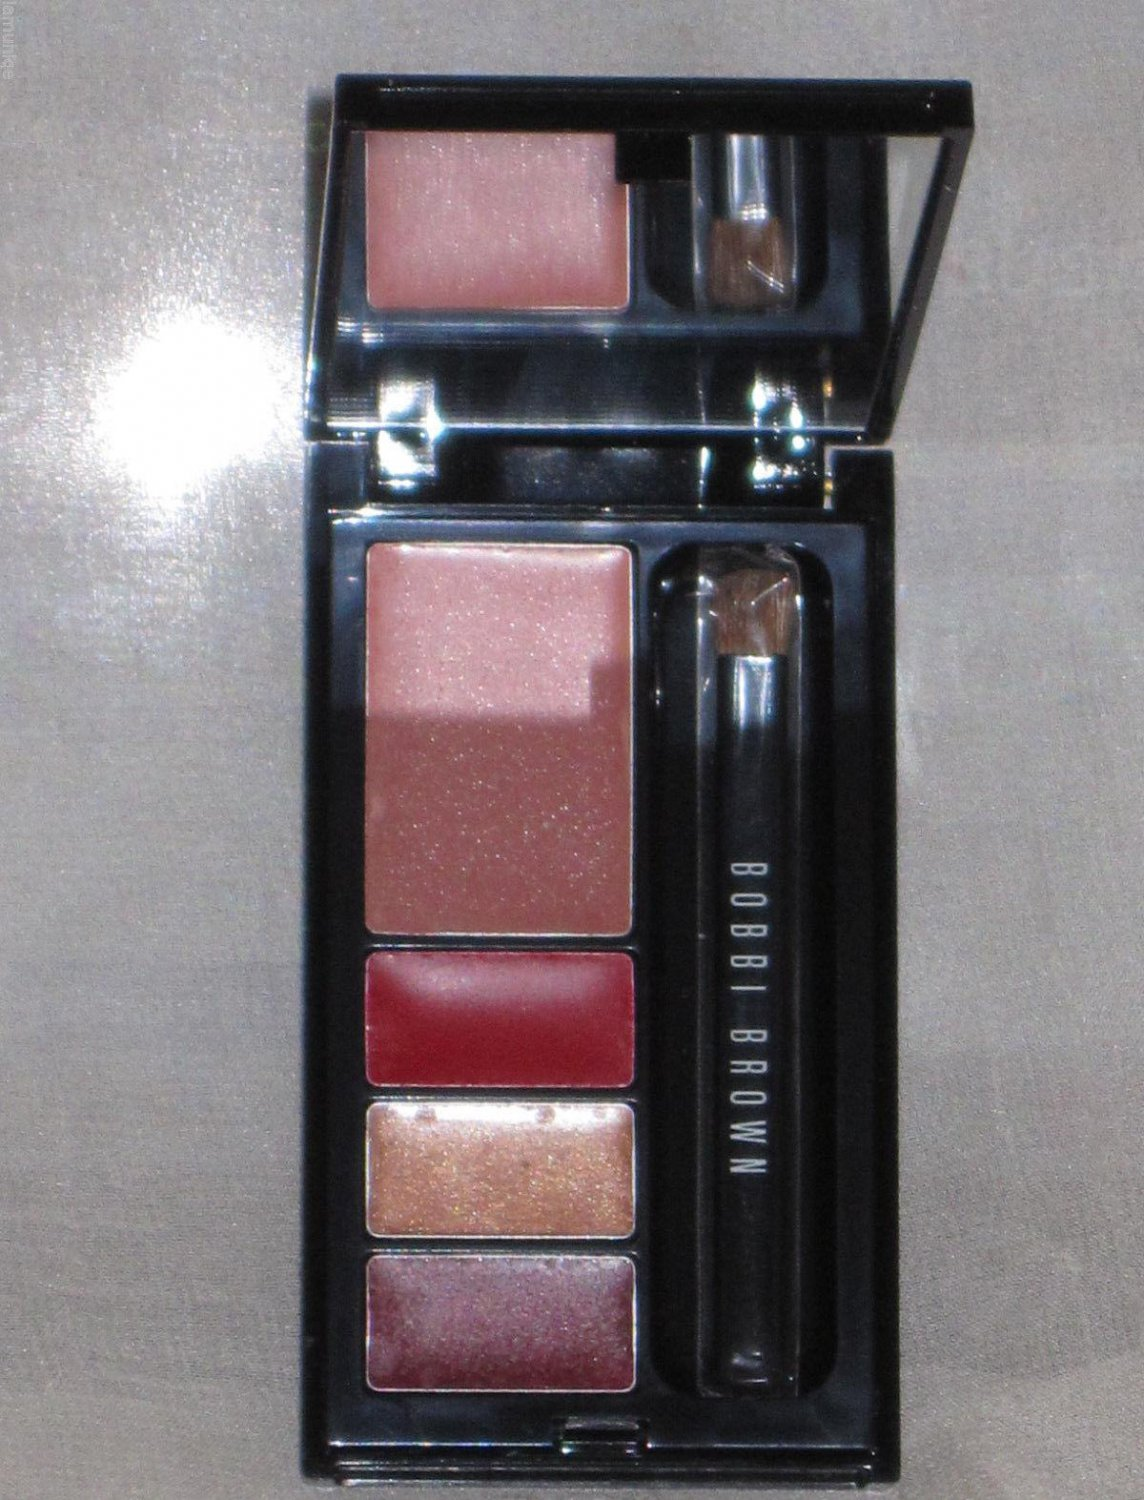 BOBBI BROWN LIMITED EDITION Holiday '14 Lip Palette